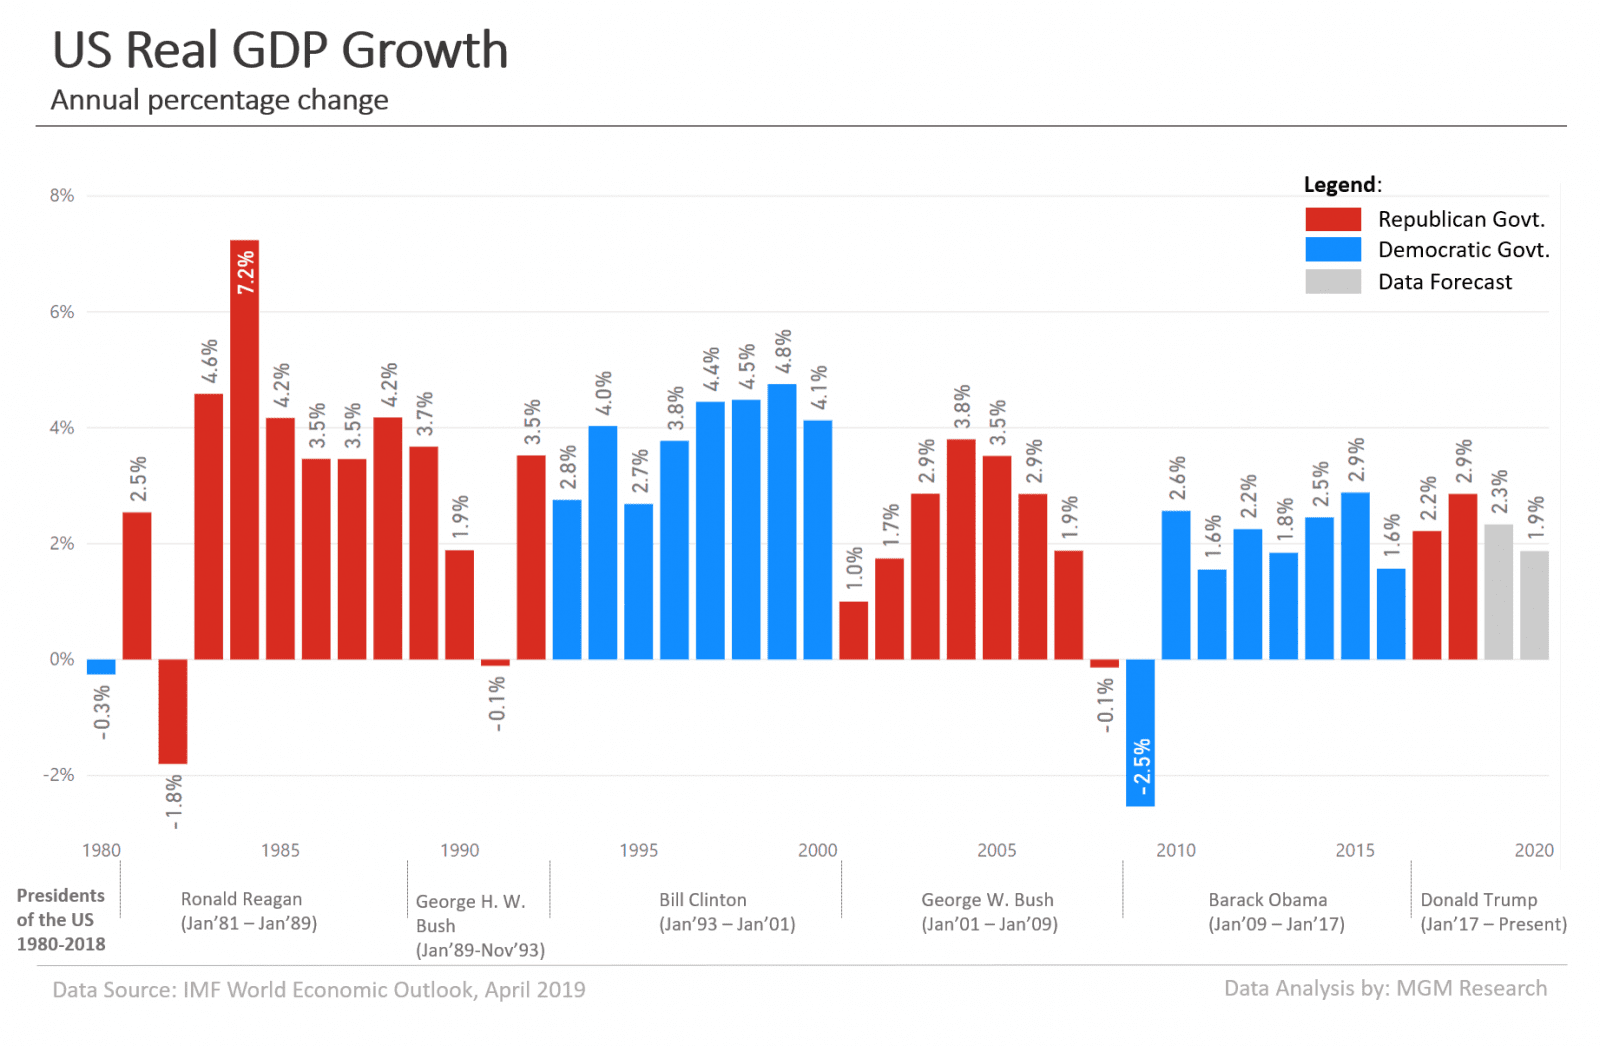 US-Real-GDP-Growth-1980-2020-2.png